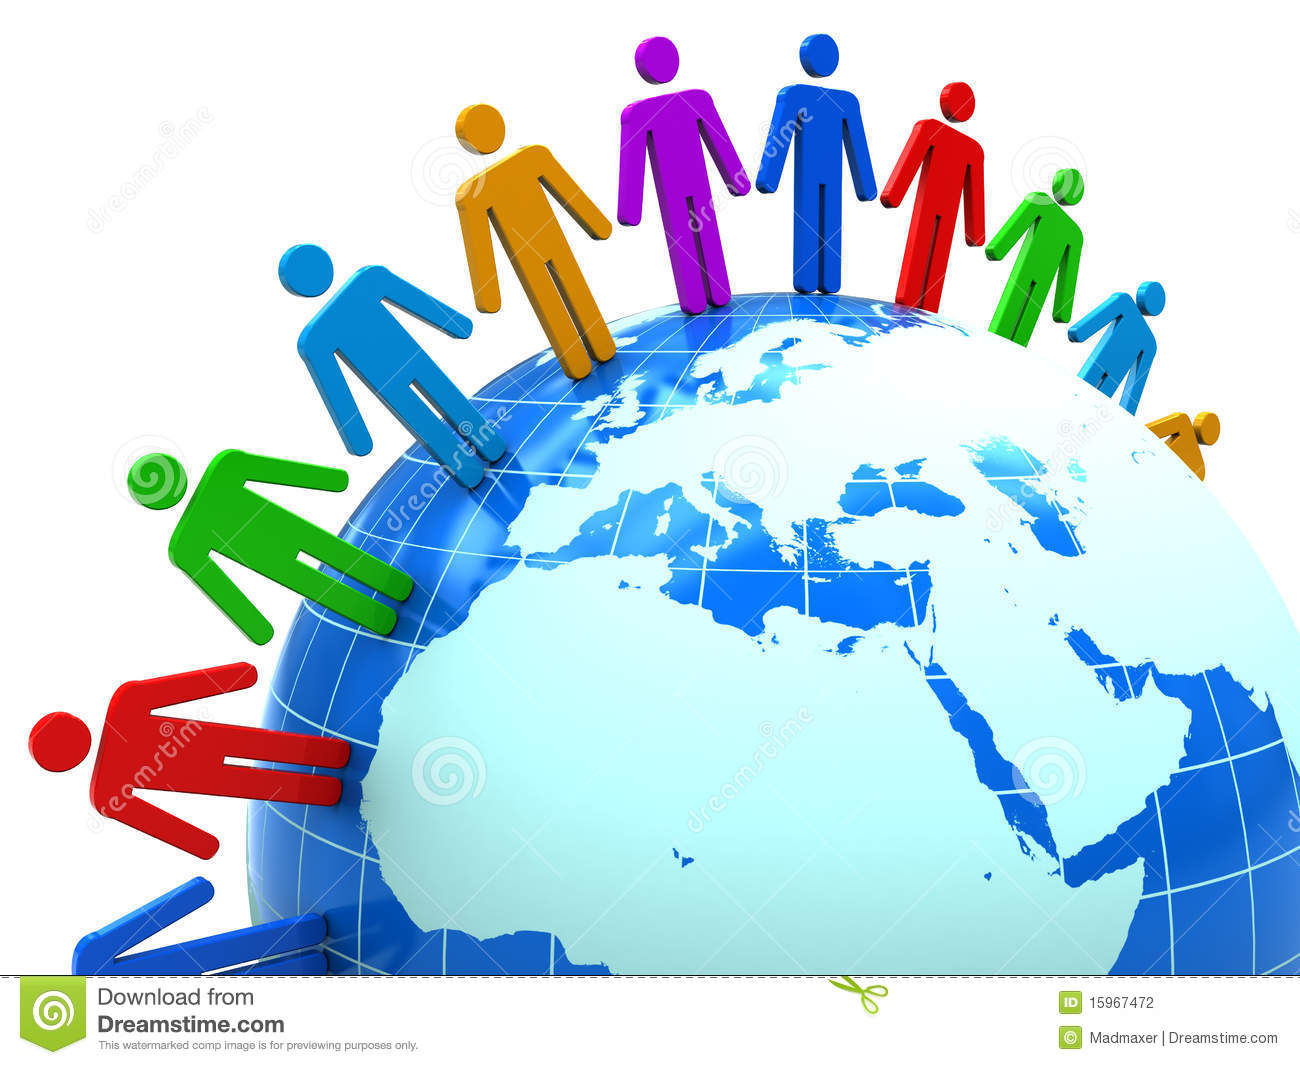 Abstract 3d illustration of colorful people around earth globe.